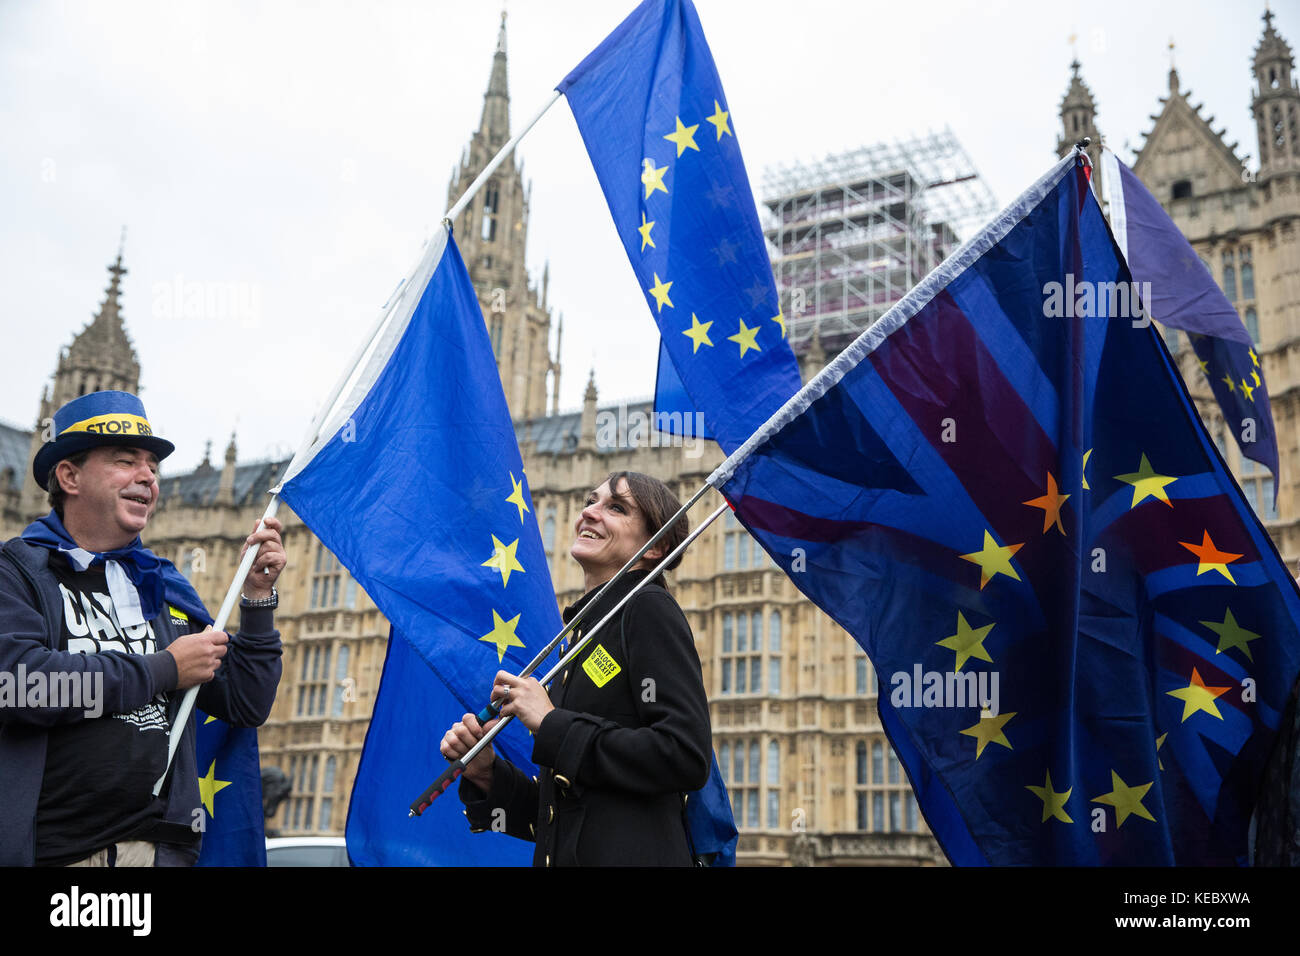 London, UK. 19th Oct, 2017. Anti-Brexit protesters stand with EU flags opposite the Palace of Westminster. Credit: - Stock Image